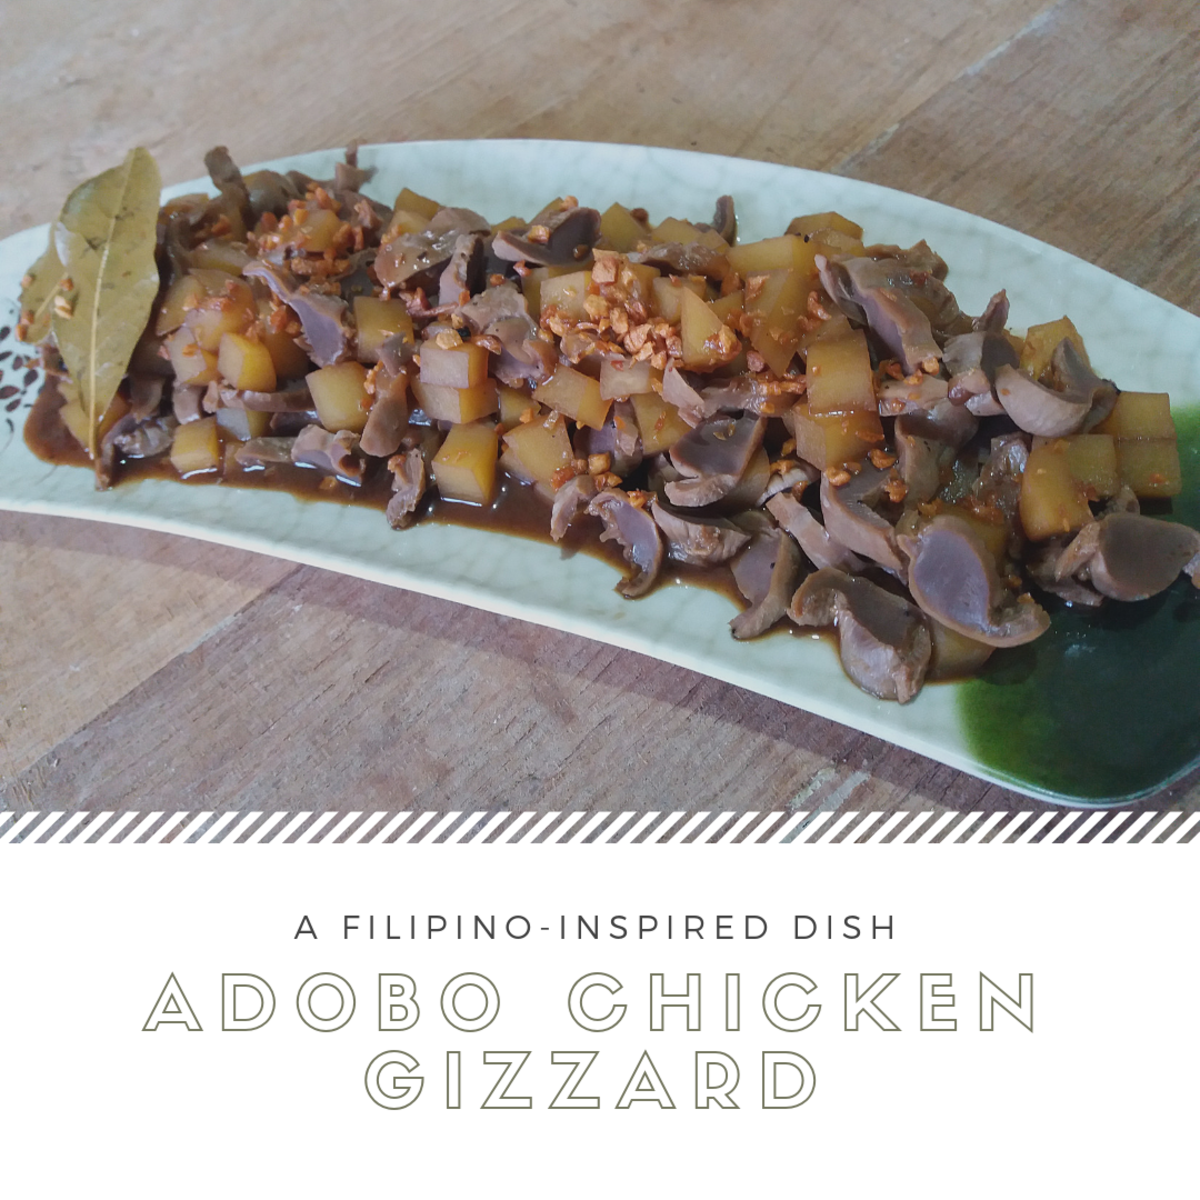 adobo chicken gizzard recipe